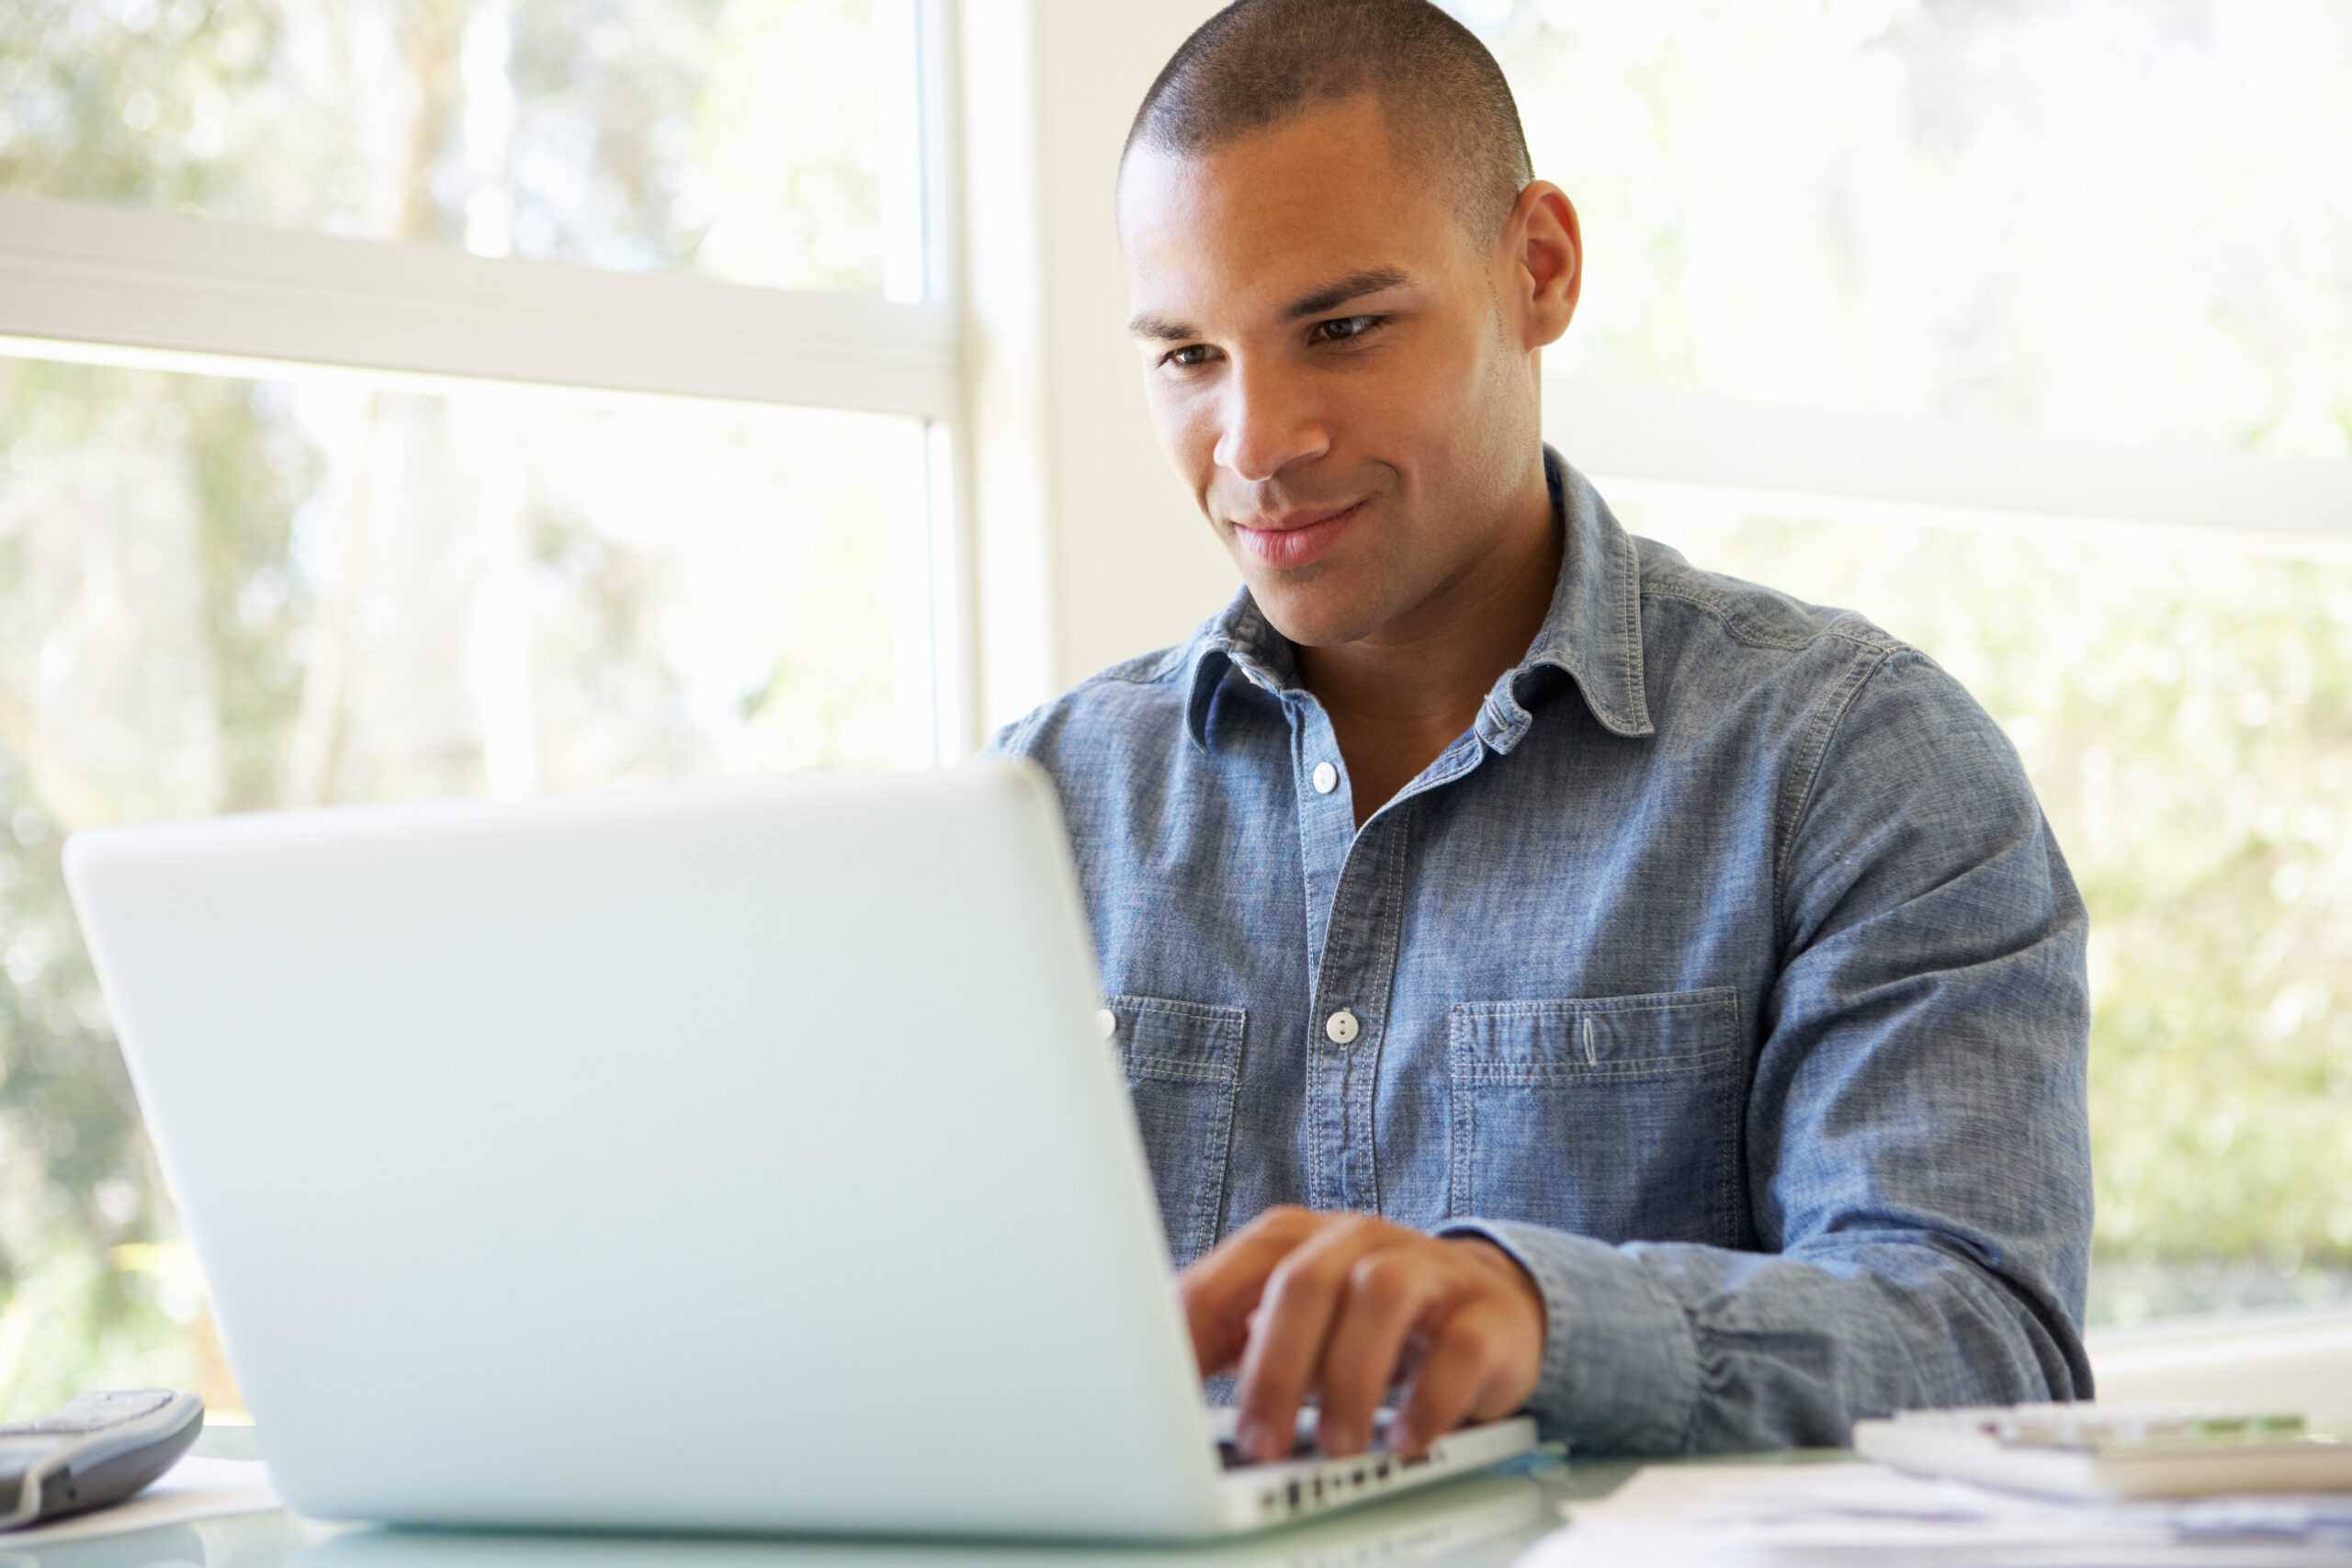 Young Man Using Laptop At Home Looking At The Screen